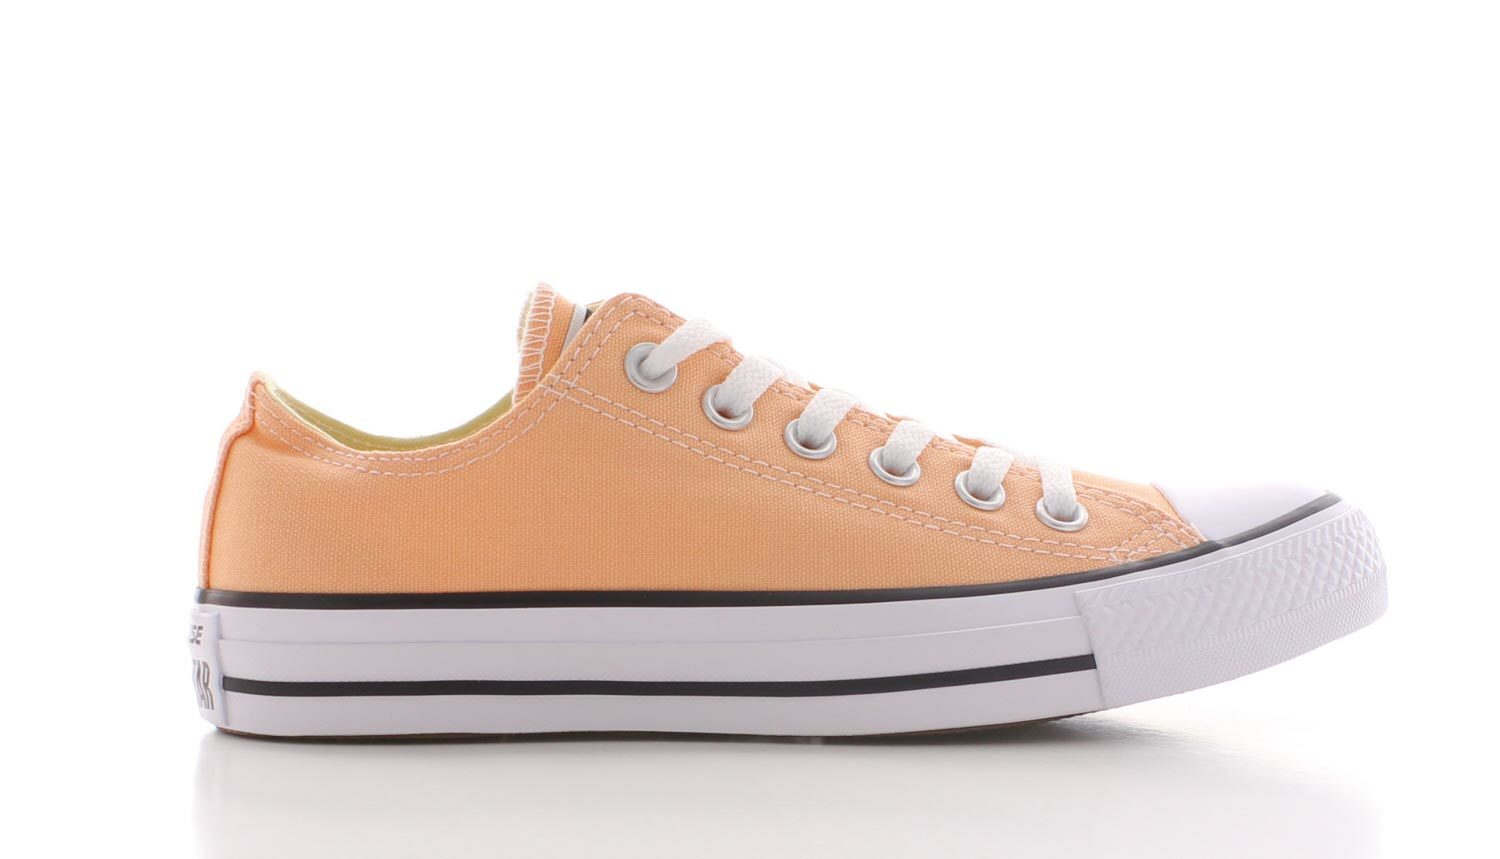 Converse All Star OX Low Sunset Glow Dames maat 38